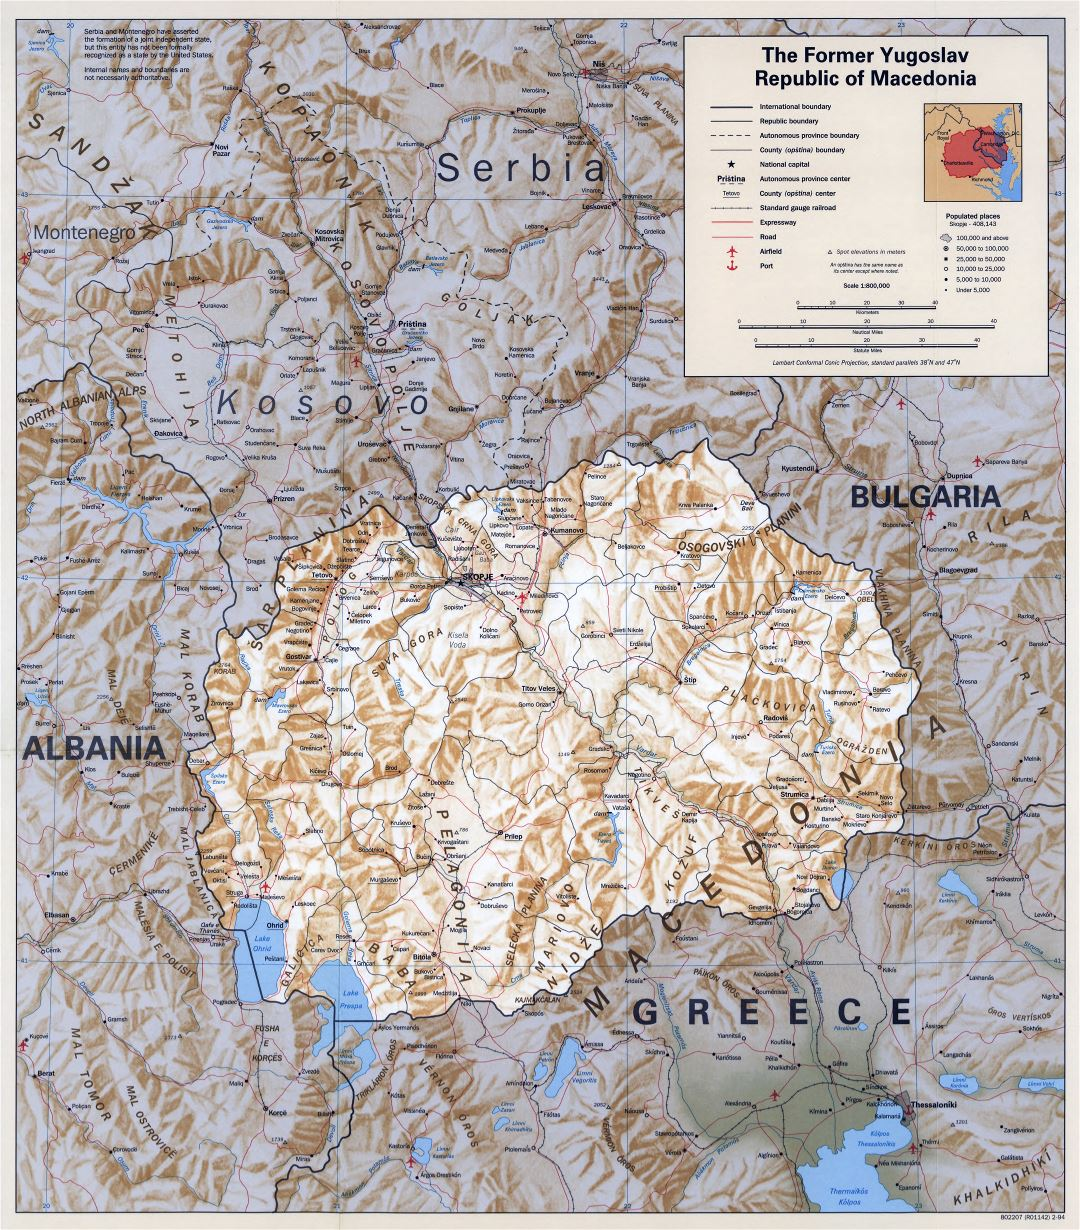 Large scale political map of Macedonia with relief, roads, railroads, cities and airports - 1994